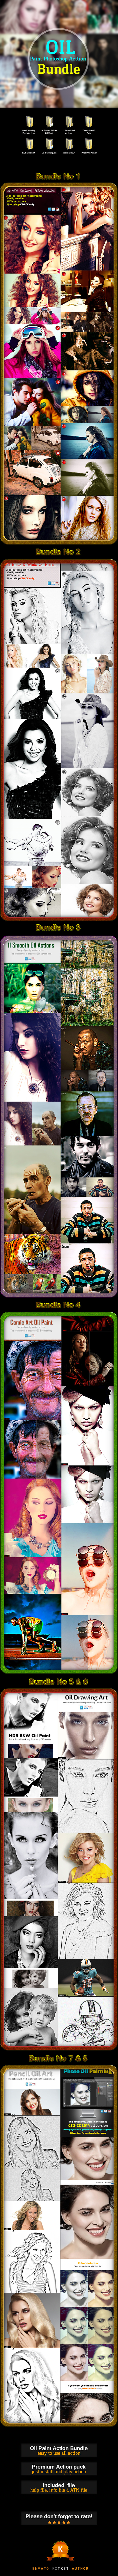 Graphicriver - Oil Paint Photoshop Action Bundle 11448242